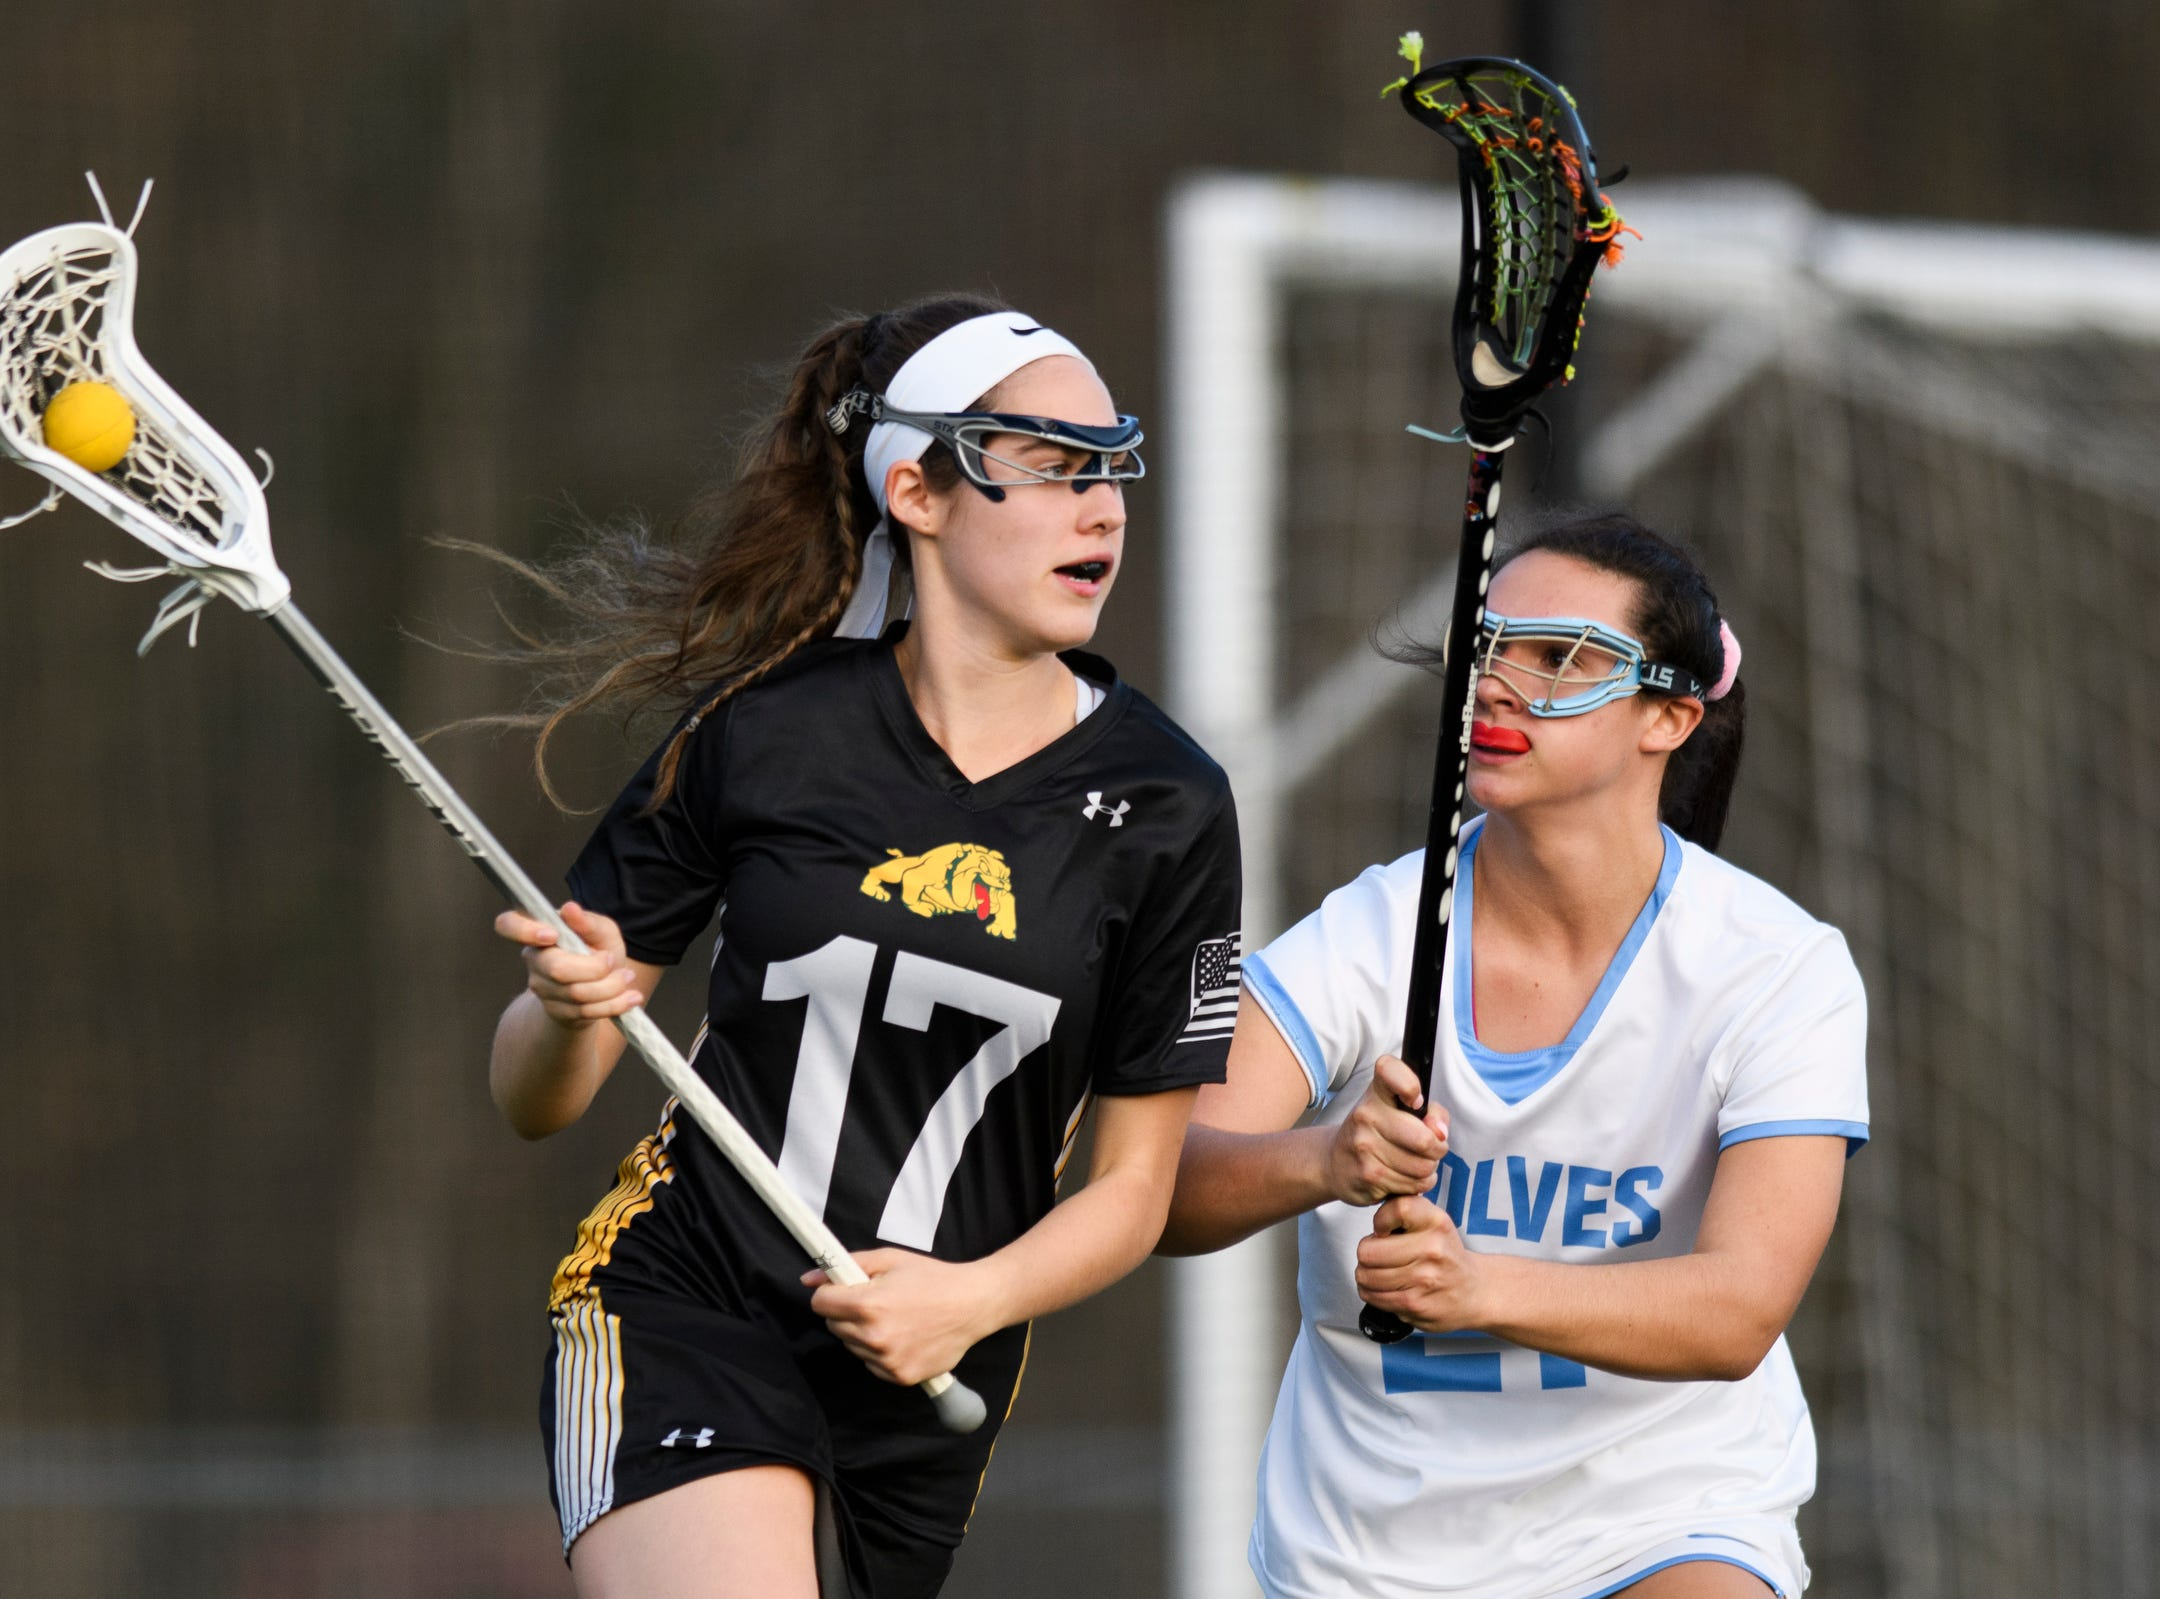 Burr and Burton's Ava Marshall (17) runs past South Burlington's Danielle Sleiman (21) with the ball during the high school girls lacrosse game between Burr and Burton Bulldogs and the South Burlington Wolves at Munson Field on Monday afternoon May 6, 2019 in South Burlington, Vermont.